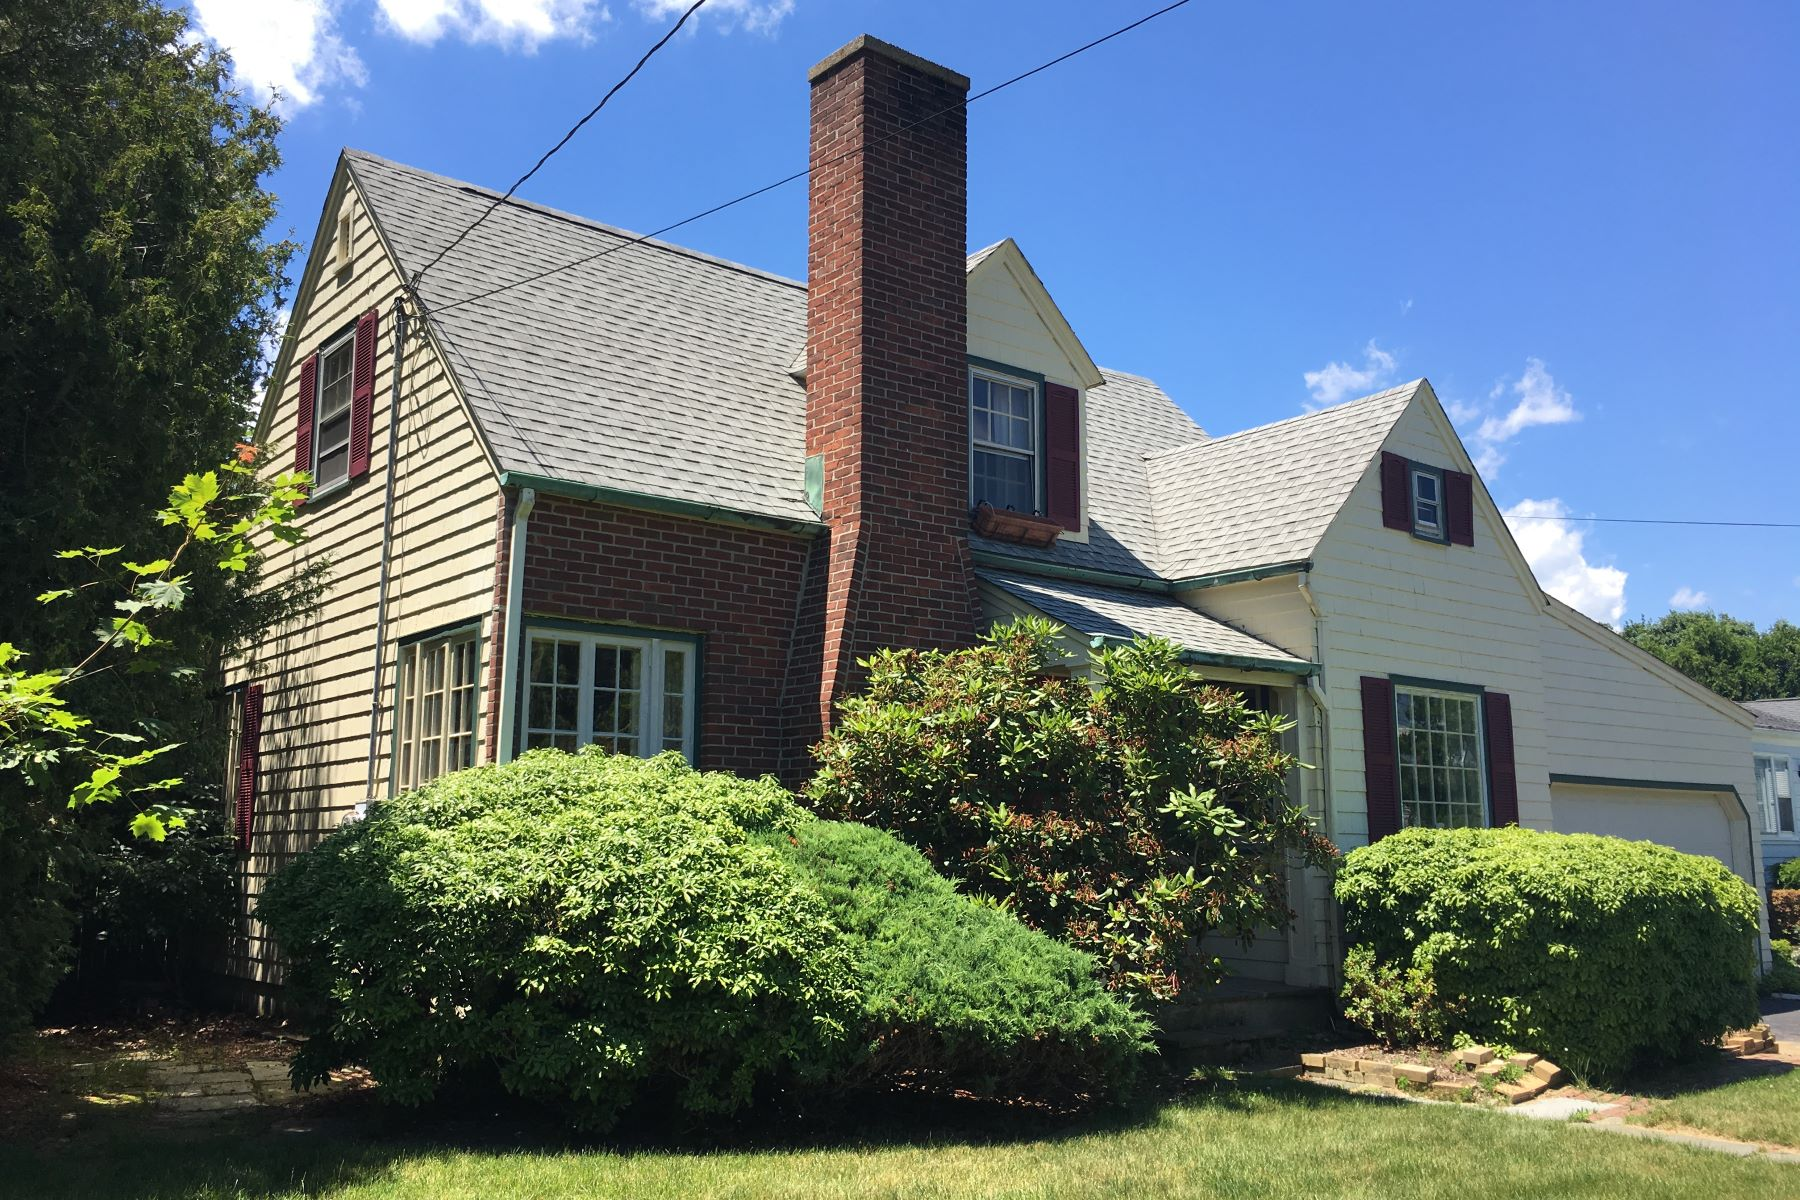 Single Family Home for Sale at Steps Away From Private Russian Beach 79 Lordship Road Stratford, Connecticut 06615 United States